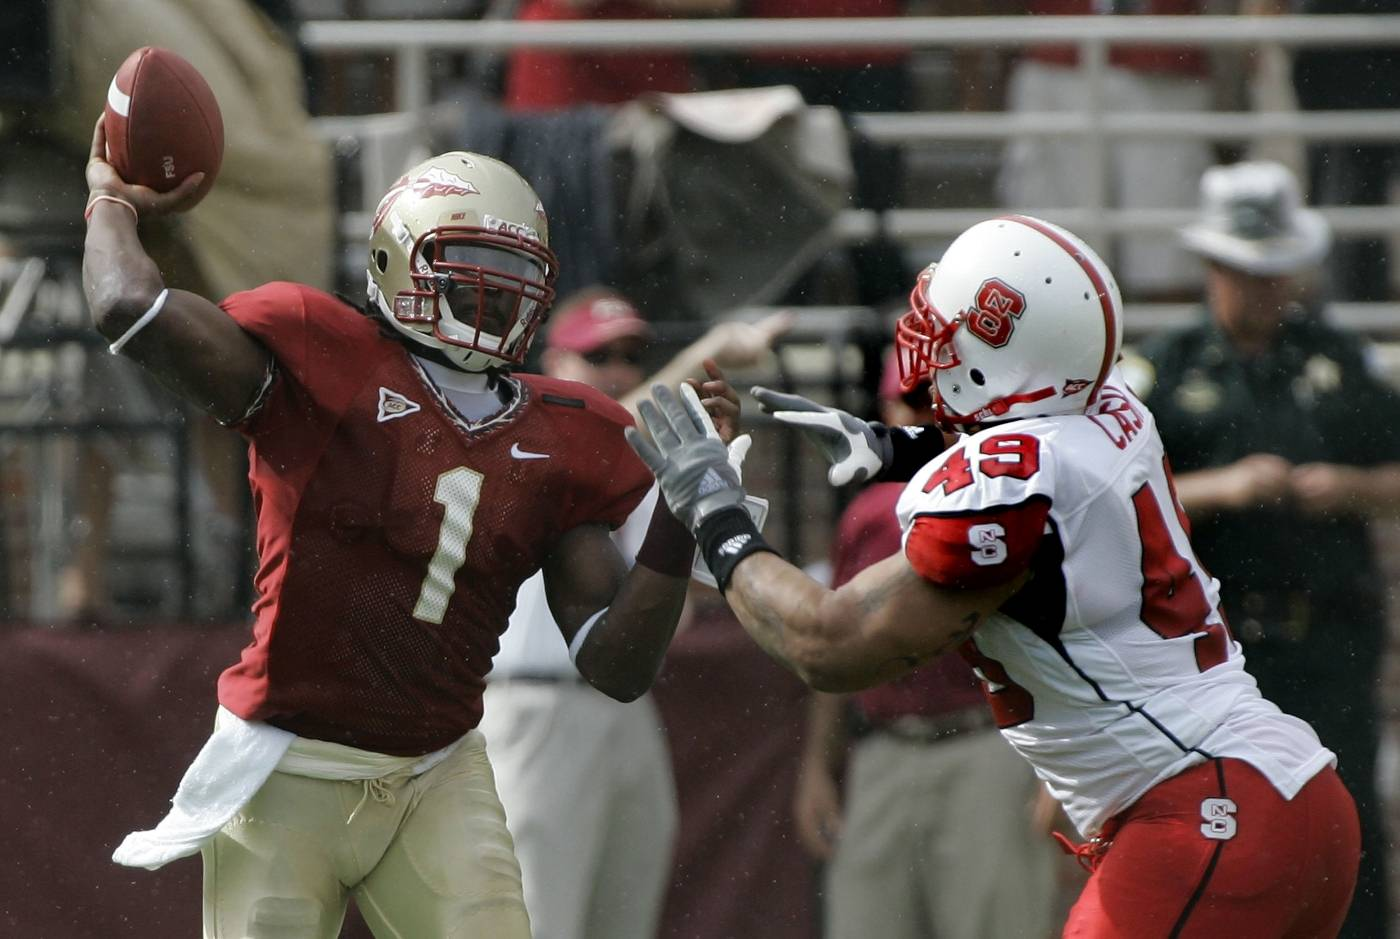 Florida State quarterback Xavier Lee, left, throws a second-quarter pass as North Carolina State's Alan-Michael Cash applies the pressure. (AP Photo/Phil Coale)